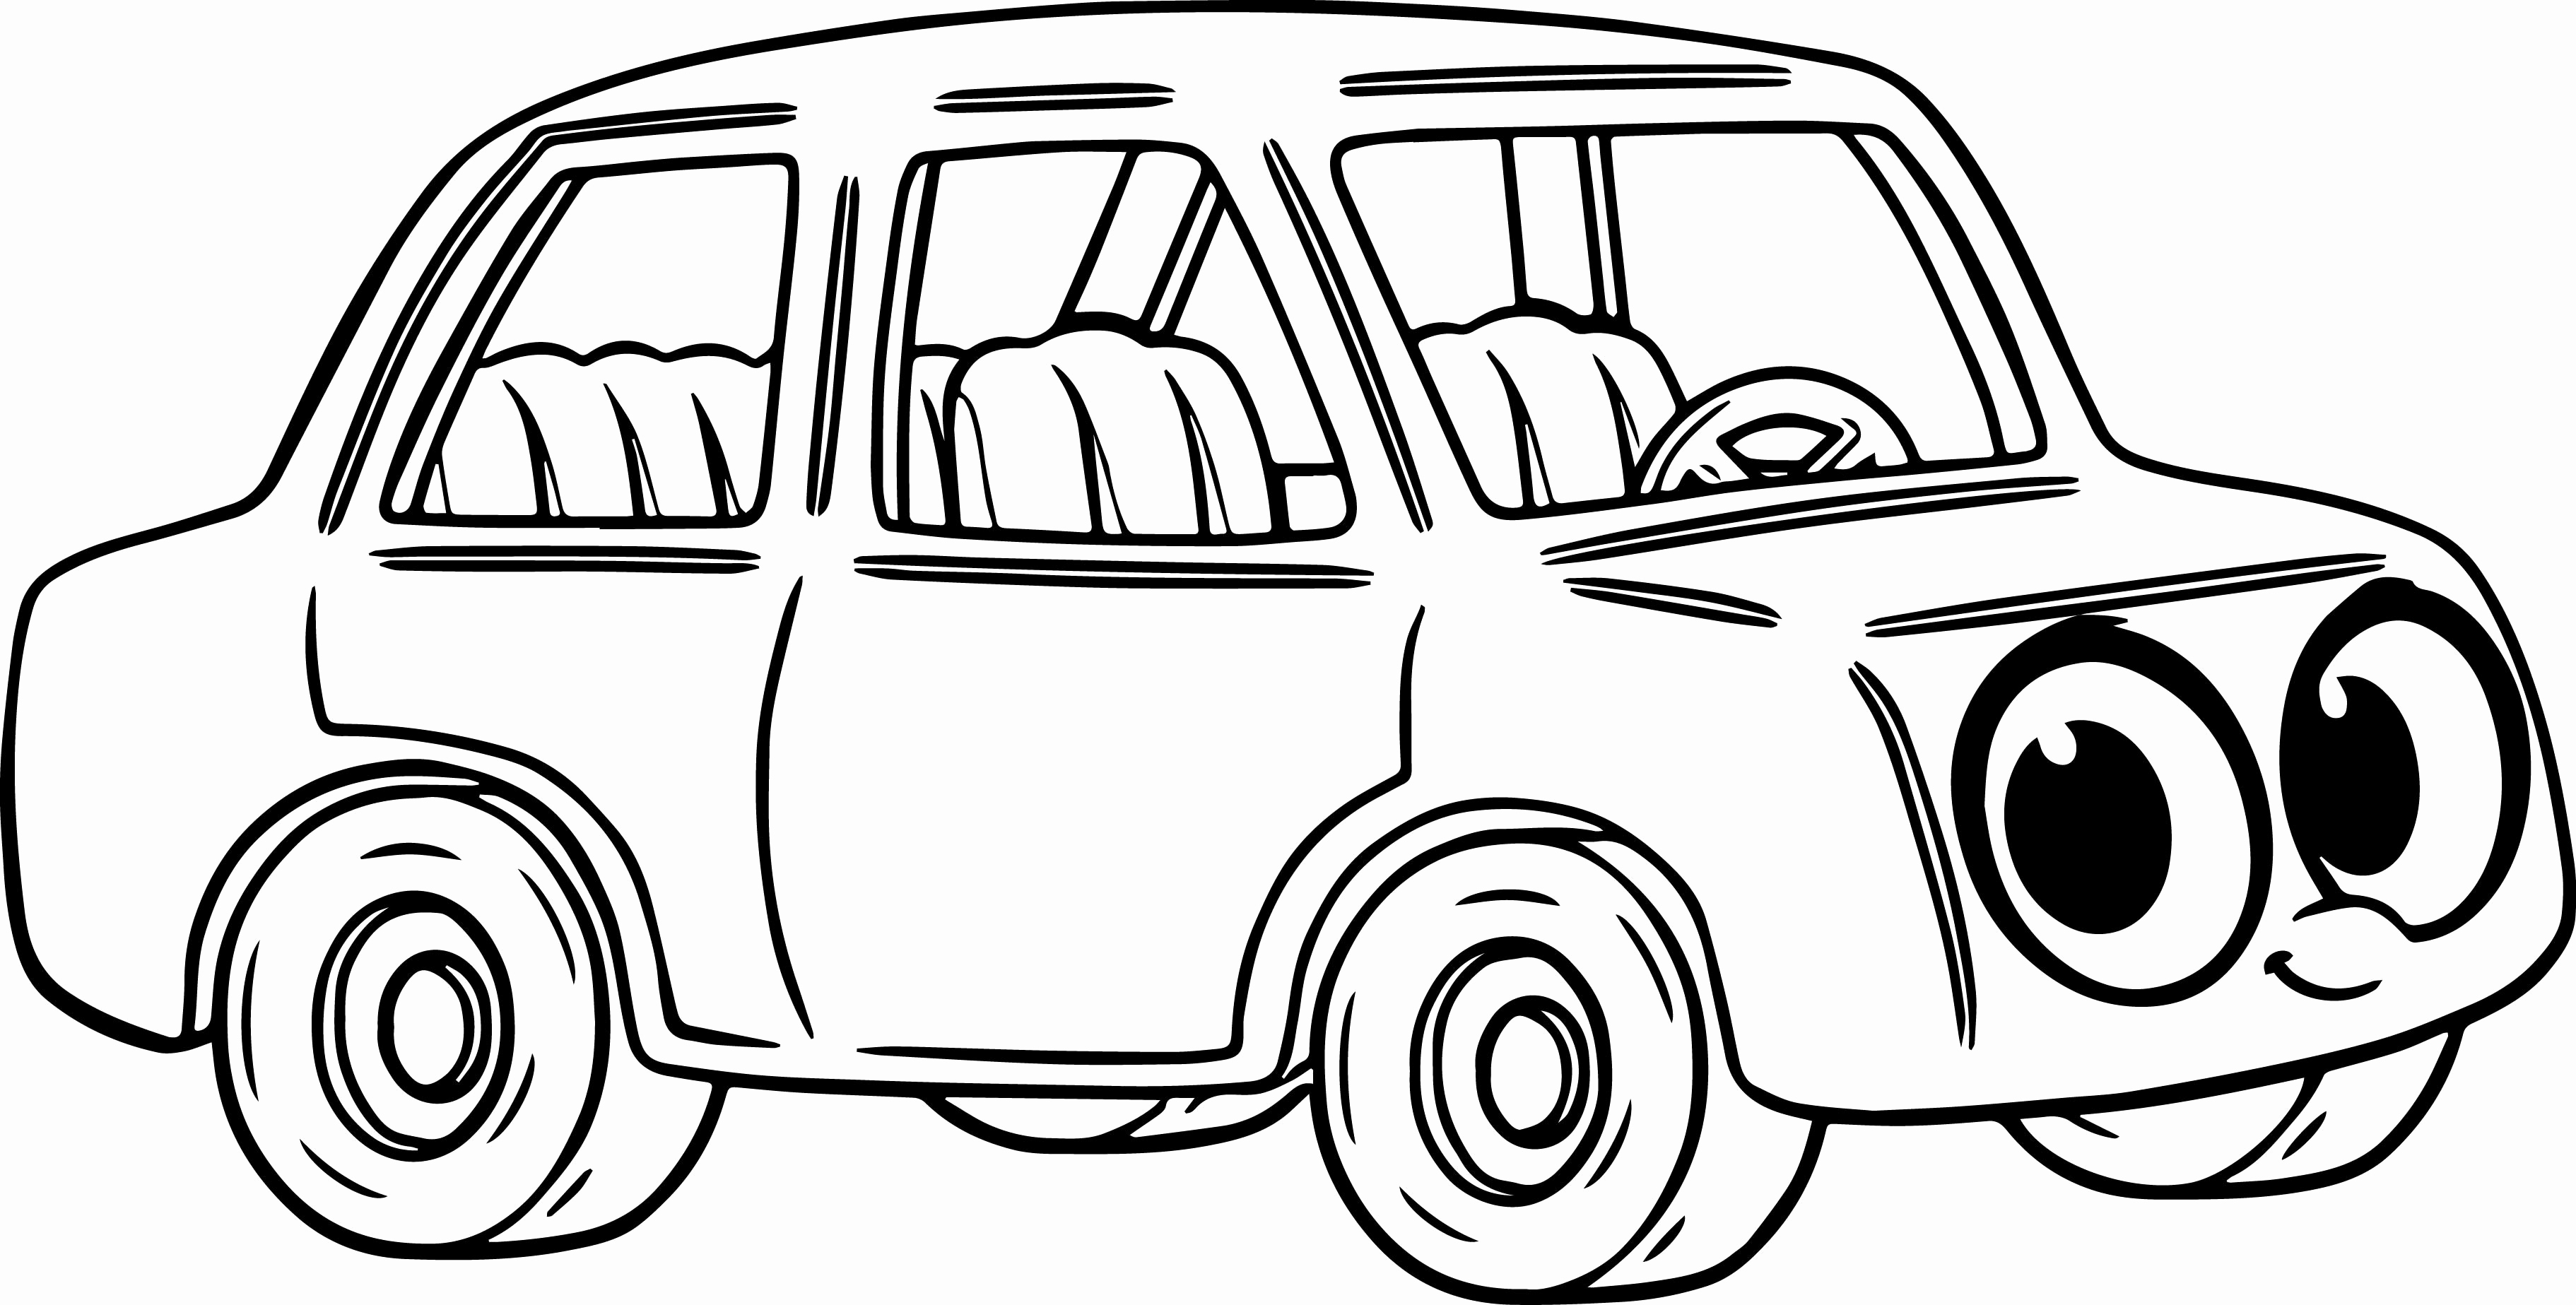 Coloring Pages For Boys Cars At Getdrawings Com Free For